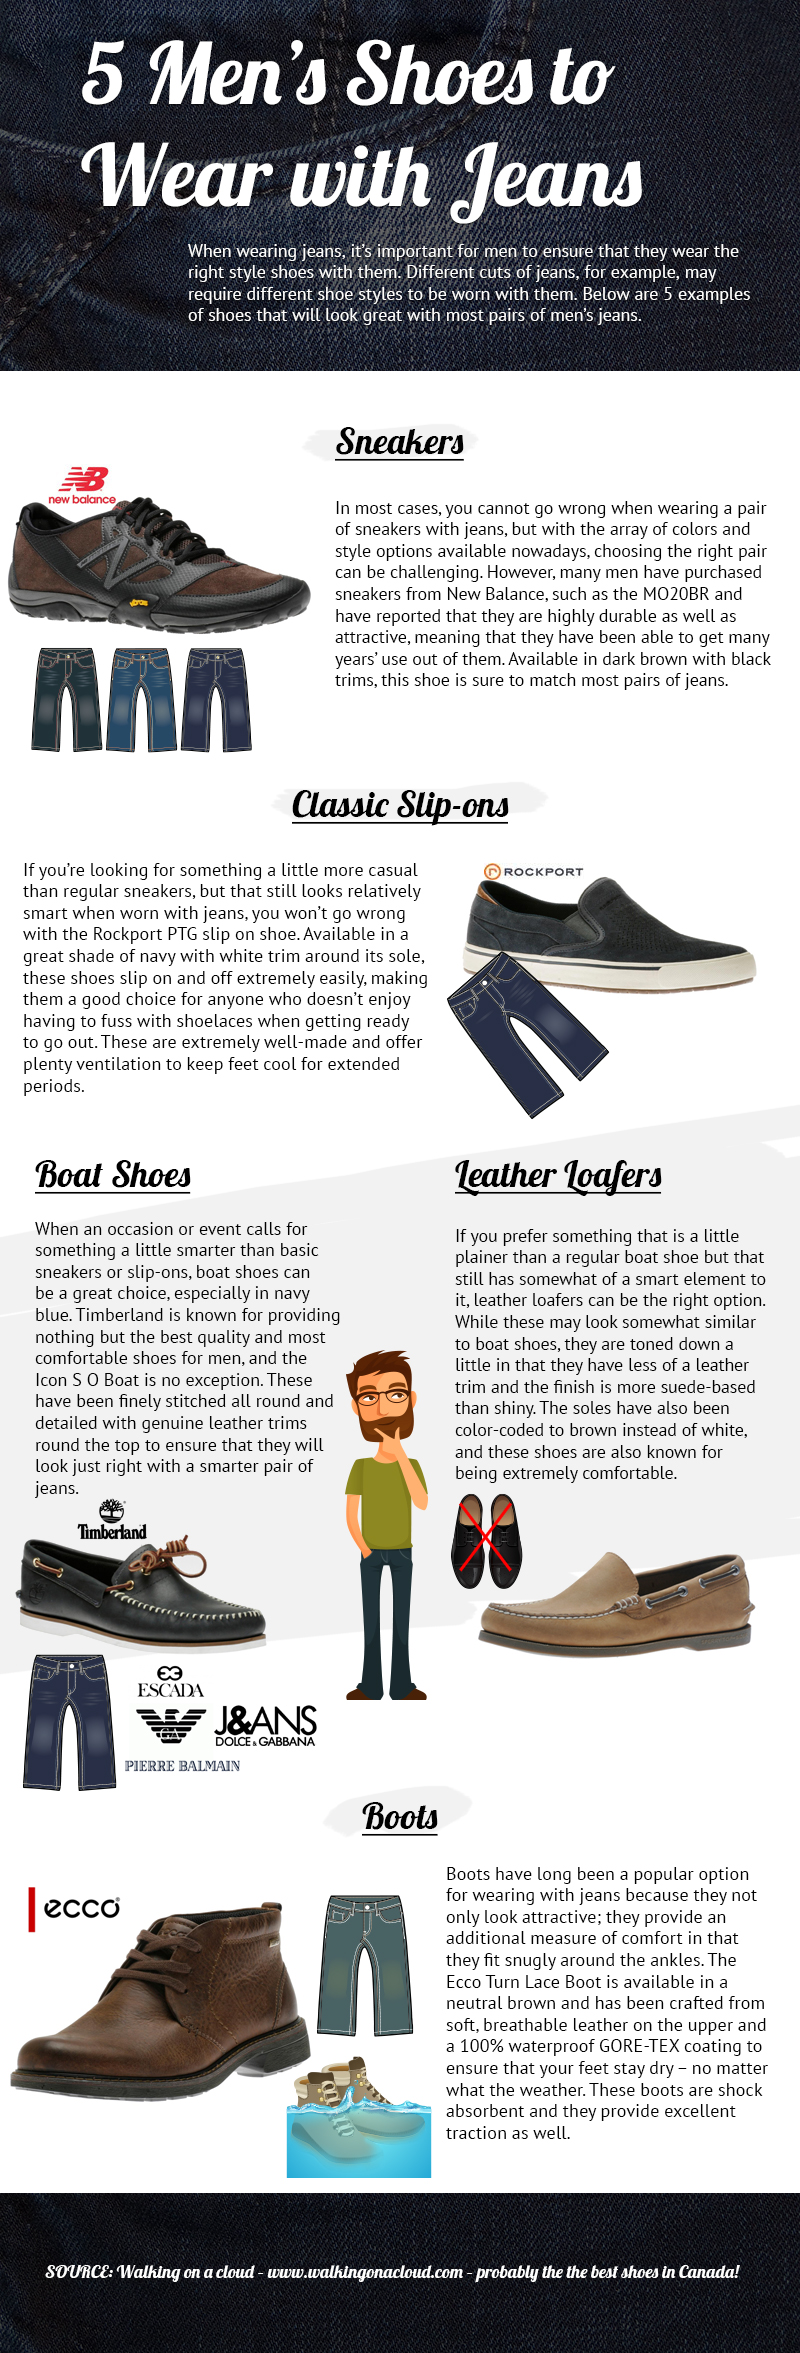 2e72e404a33 5 Men's Shoes to Wear with Jeans [infographic]